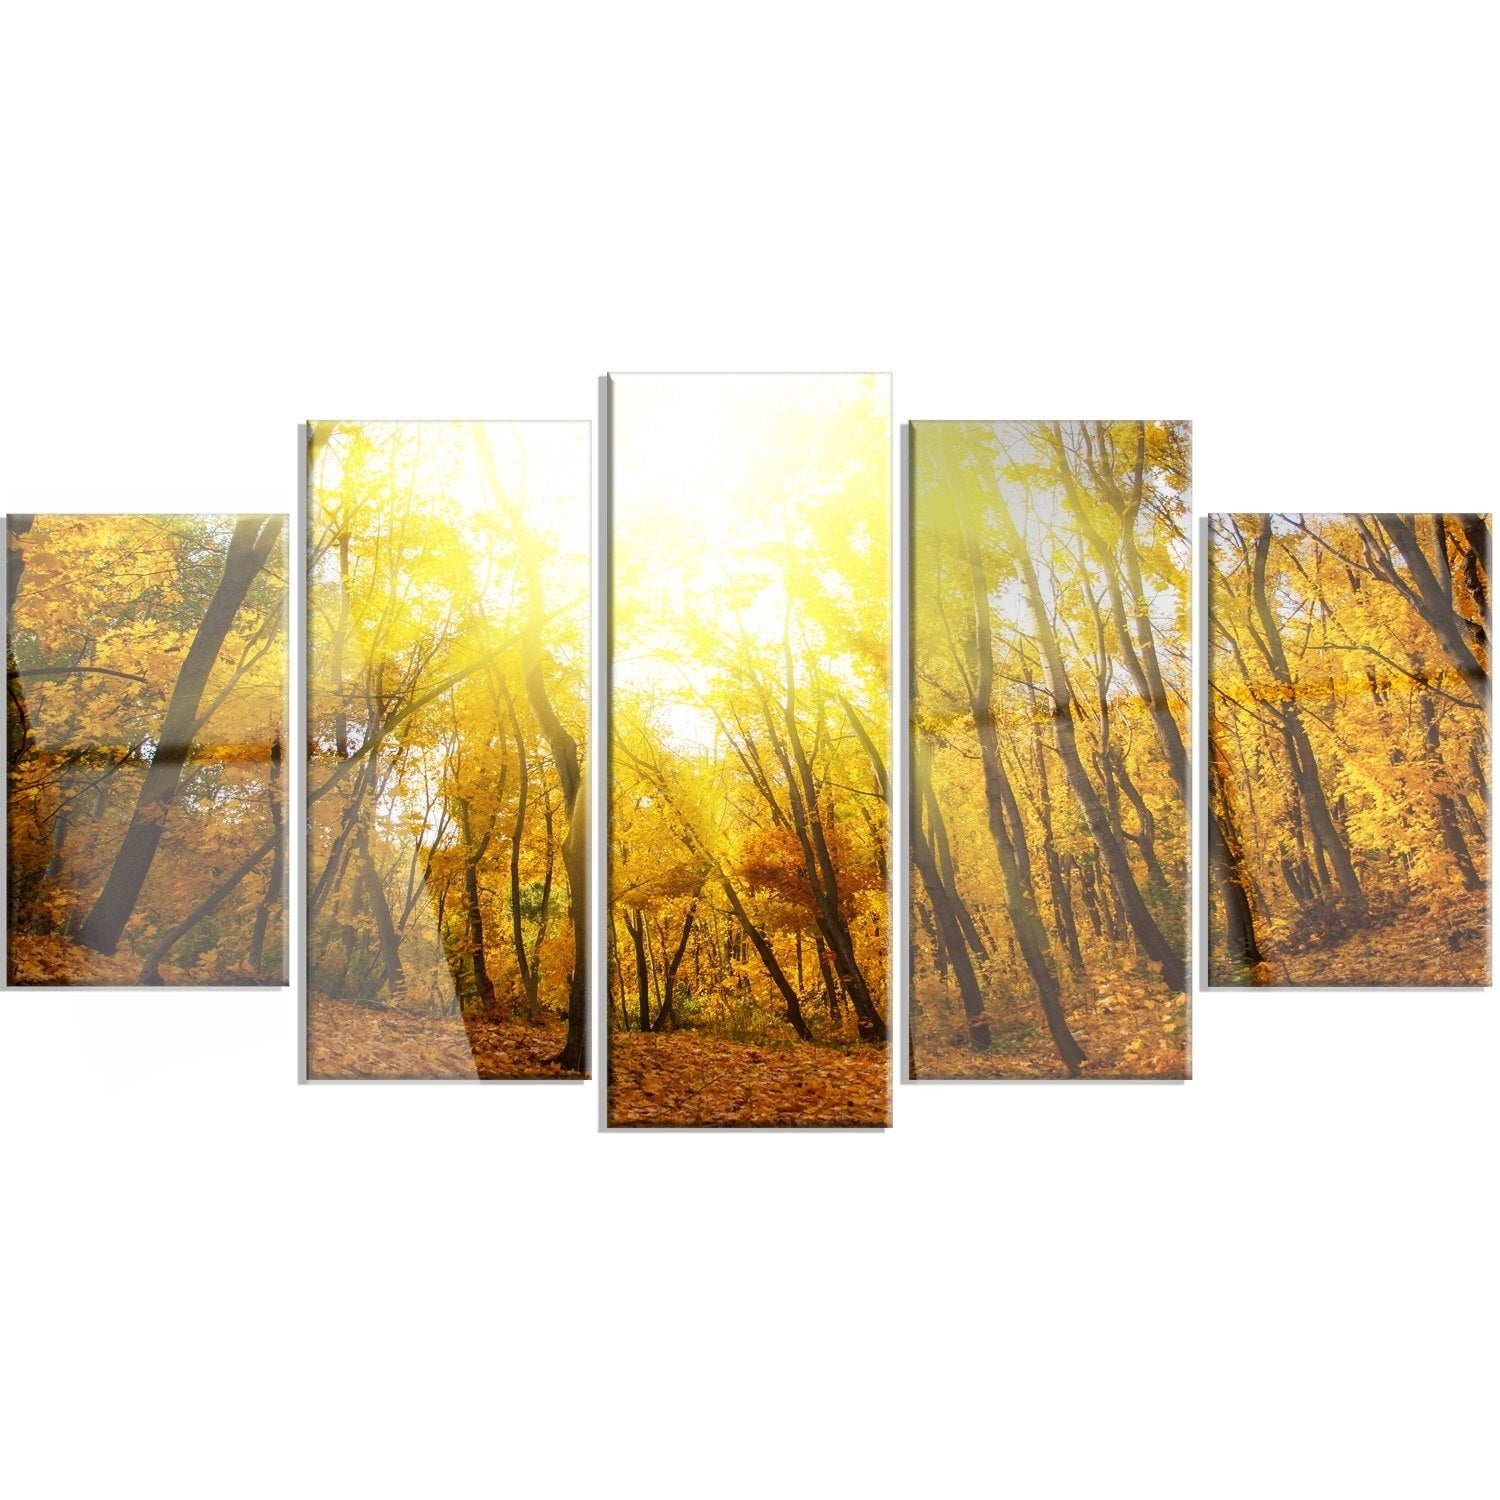 Wonderful Artisan Wall Art Contemporary - The Wall Art Decorations ...